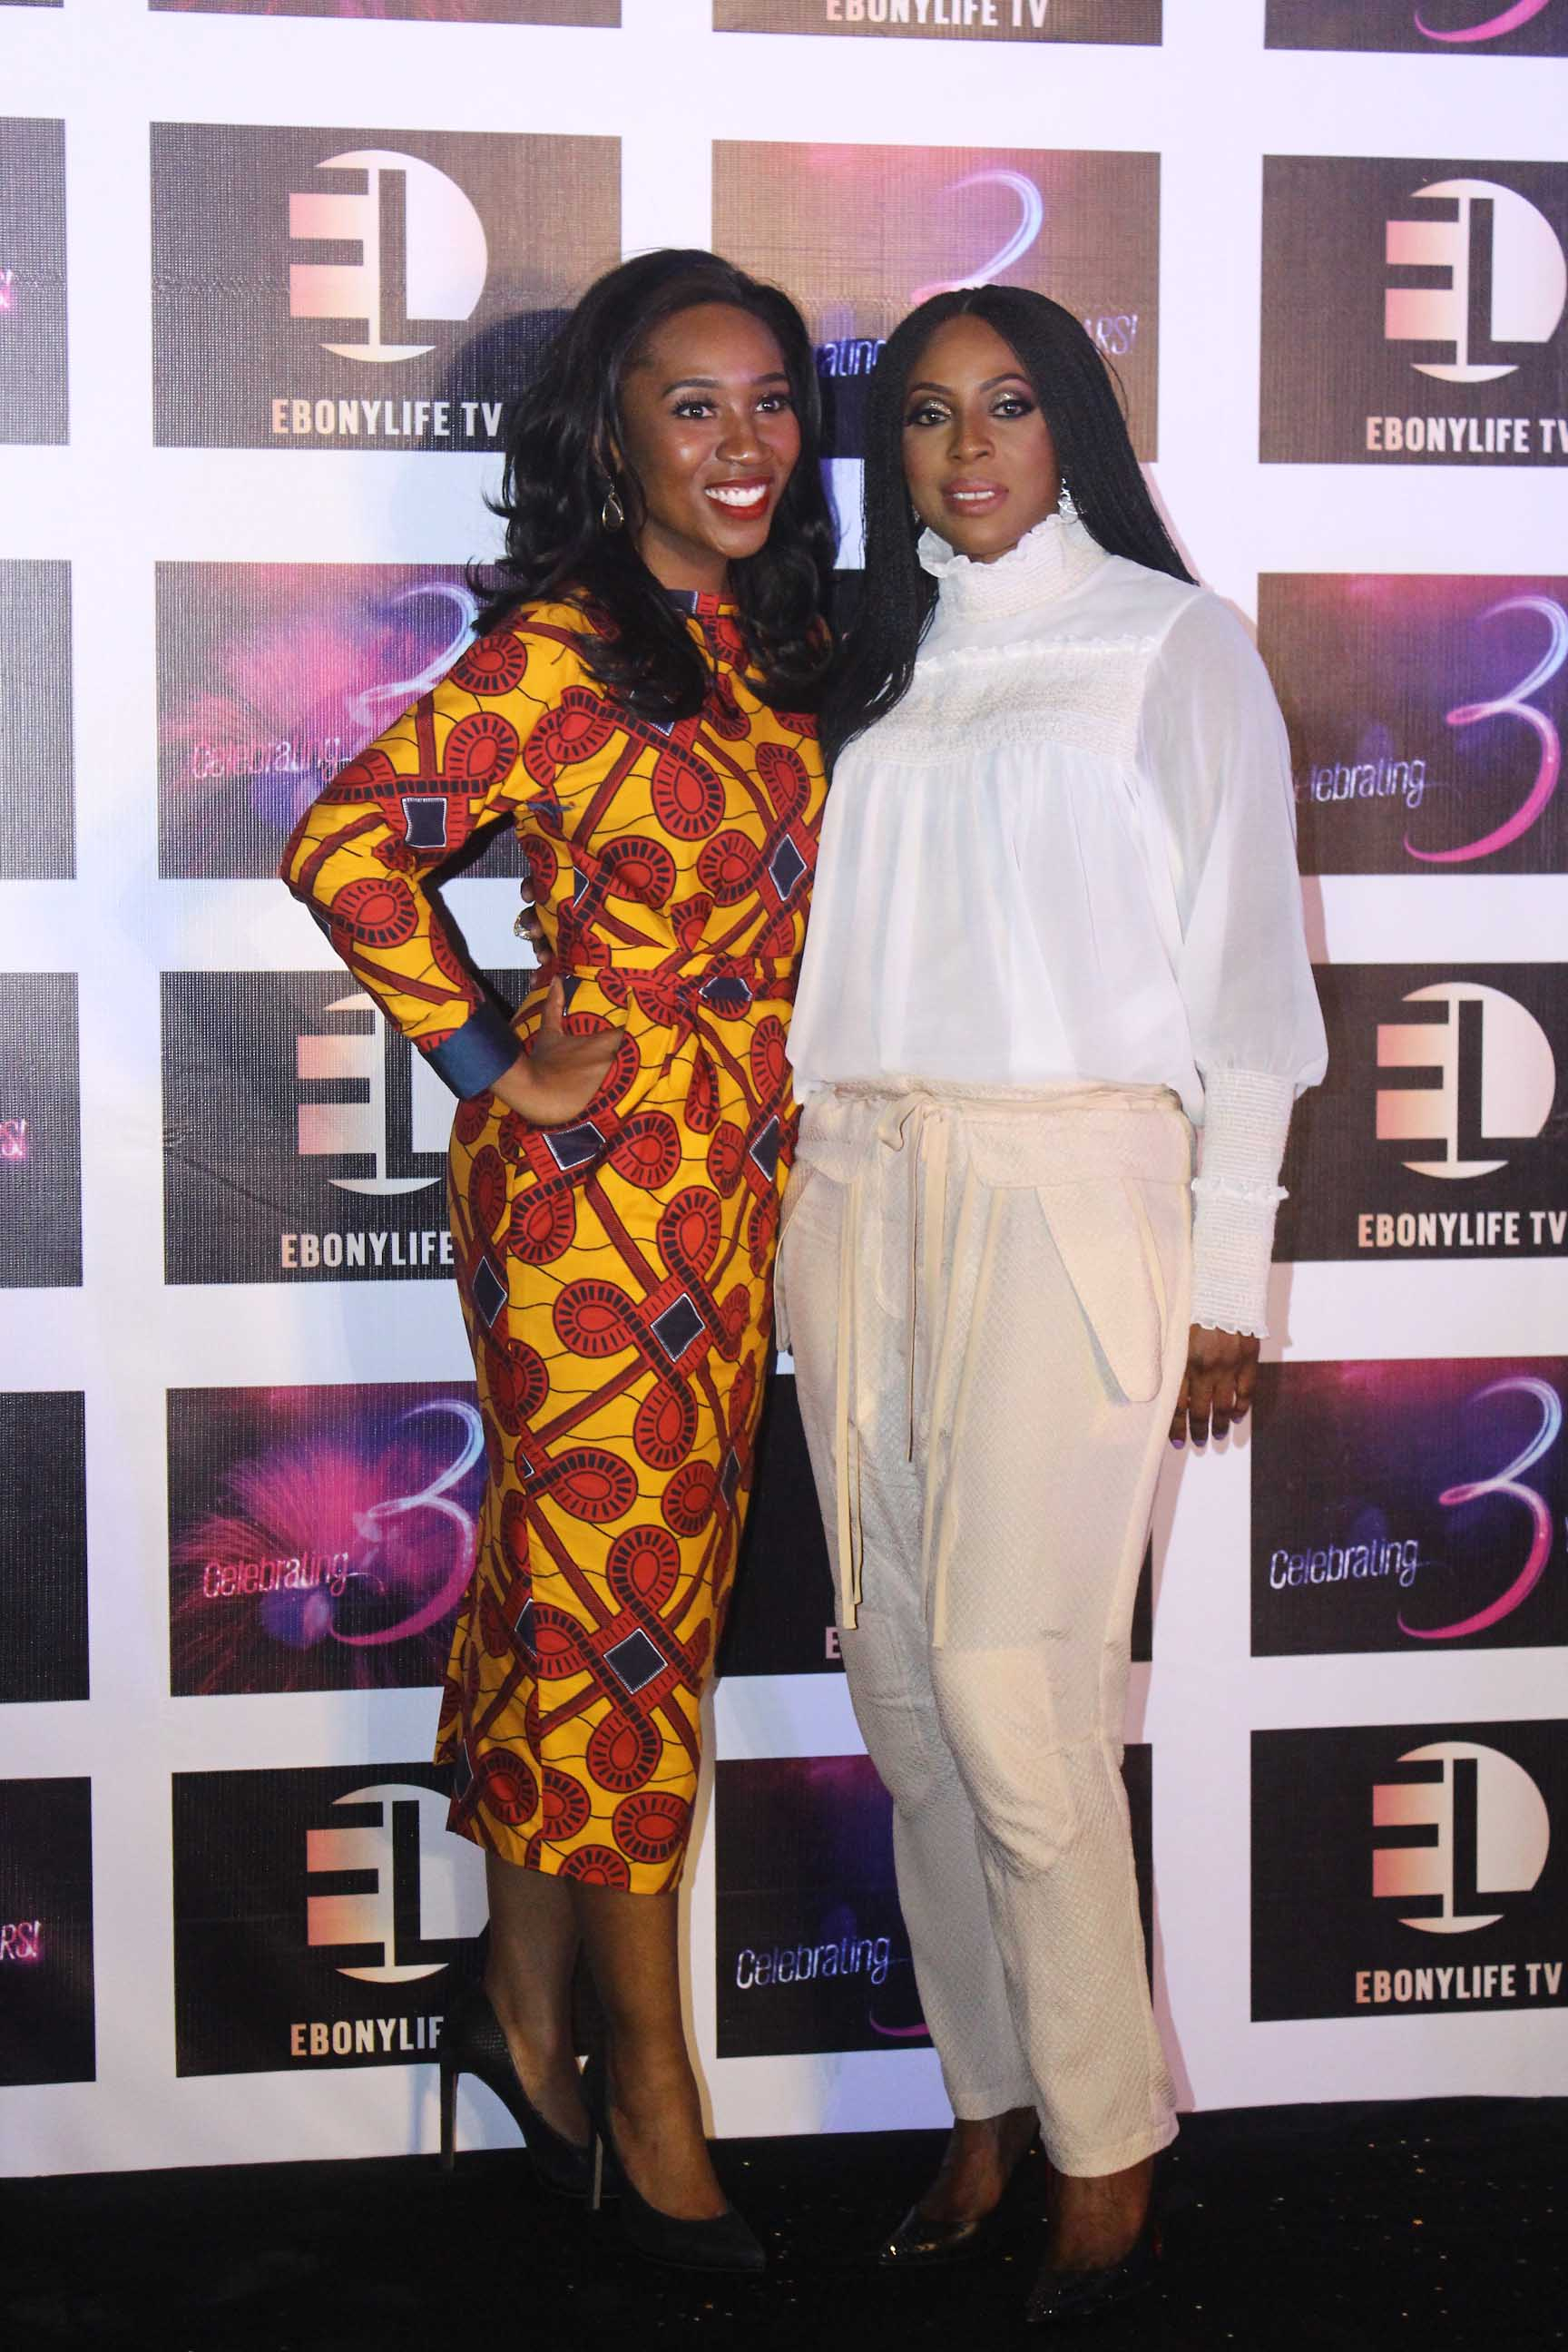 Eunice Omole and Mo Abudu